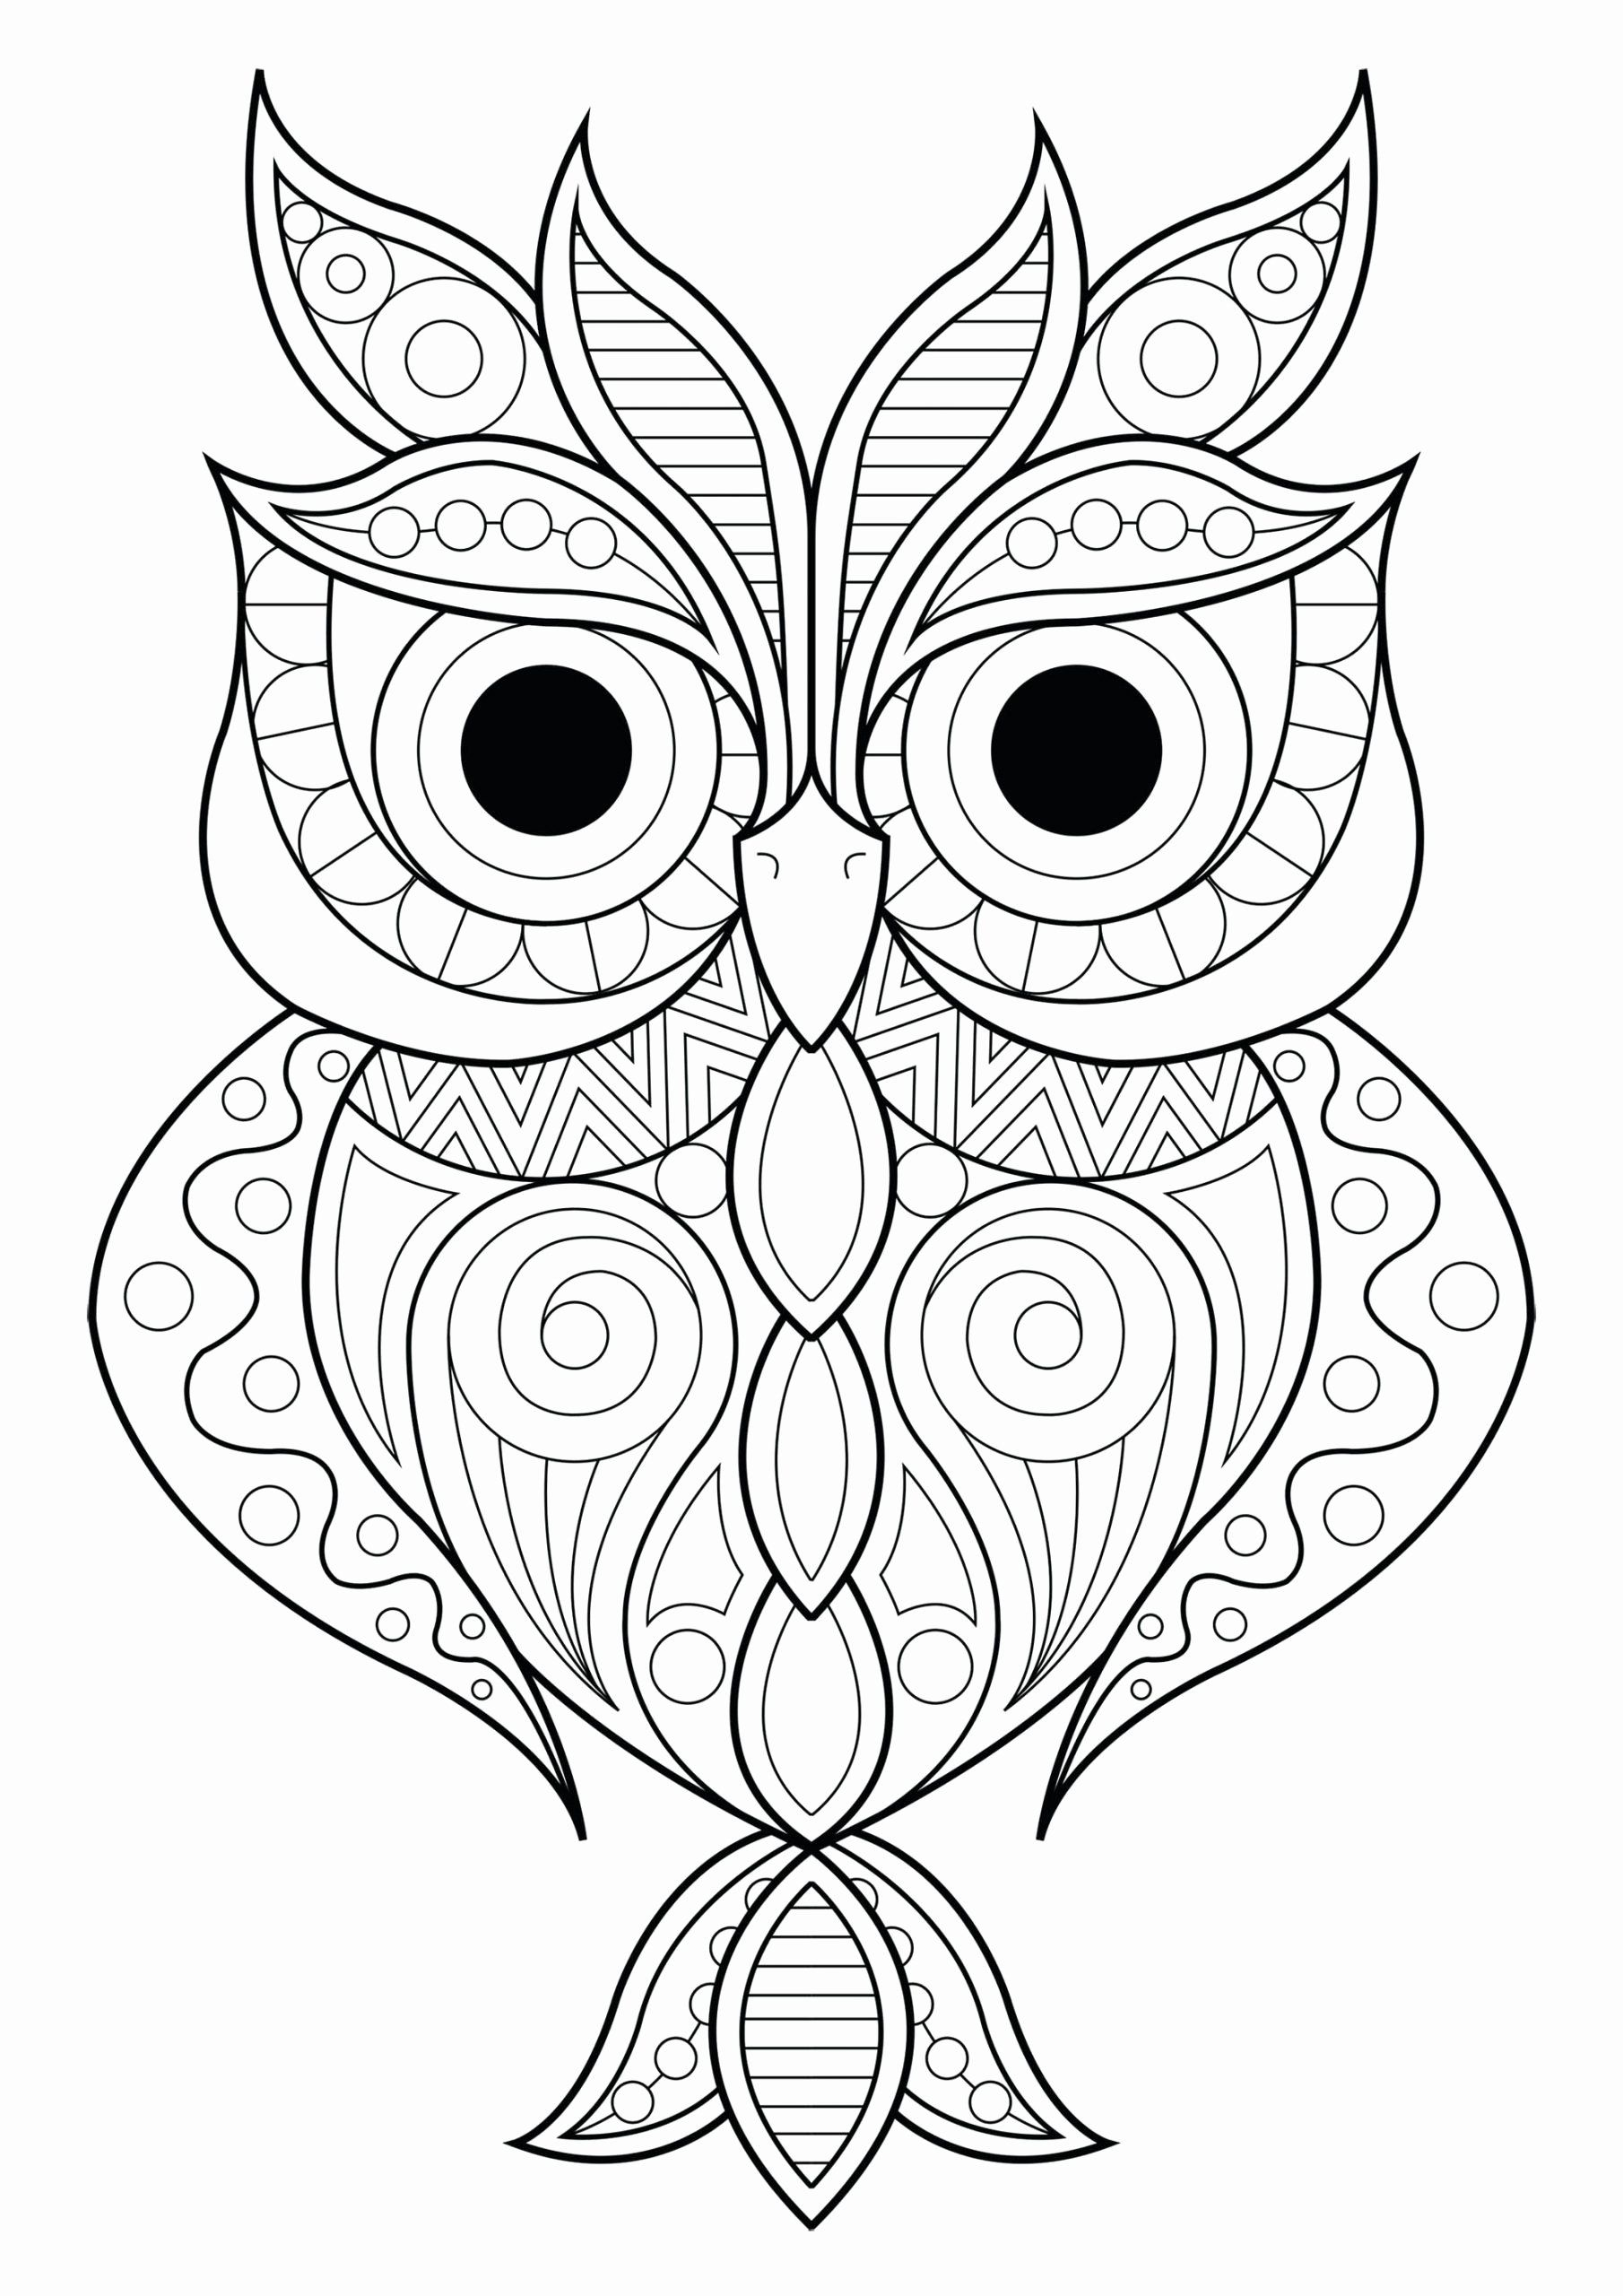 Owl Coloring Book For Adults Inspirational Coloring Pages Coloring Book An Owl Advanced Books F Owl Coloring Pages Animal Coloring Pages Mandala Coloring Pages